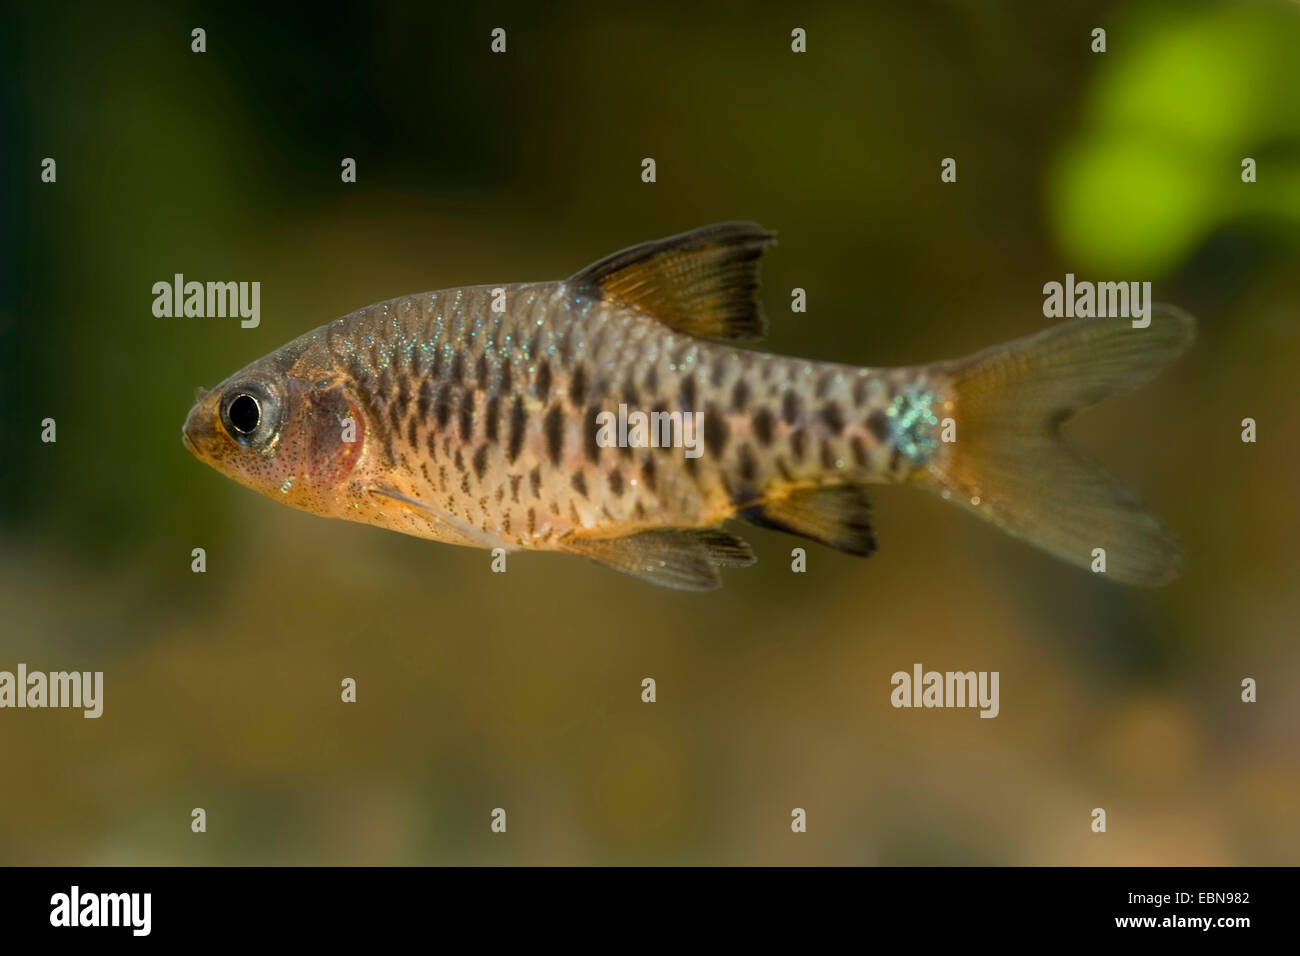 Checkered barb, Checkerboard, Island barb (Puntius oligolepis, Barbus oligolepis), swimming - Stock Image